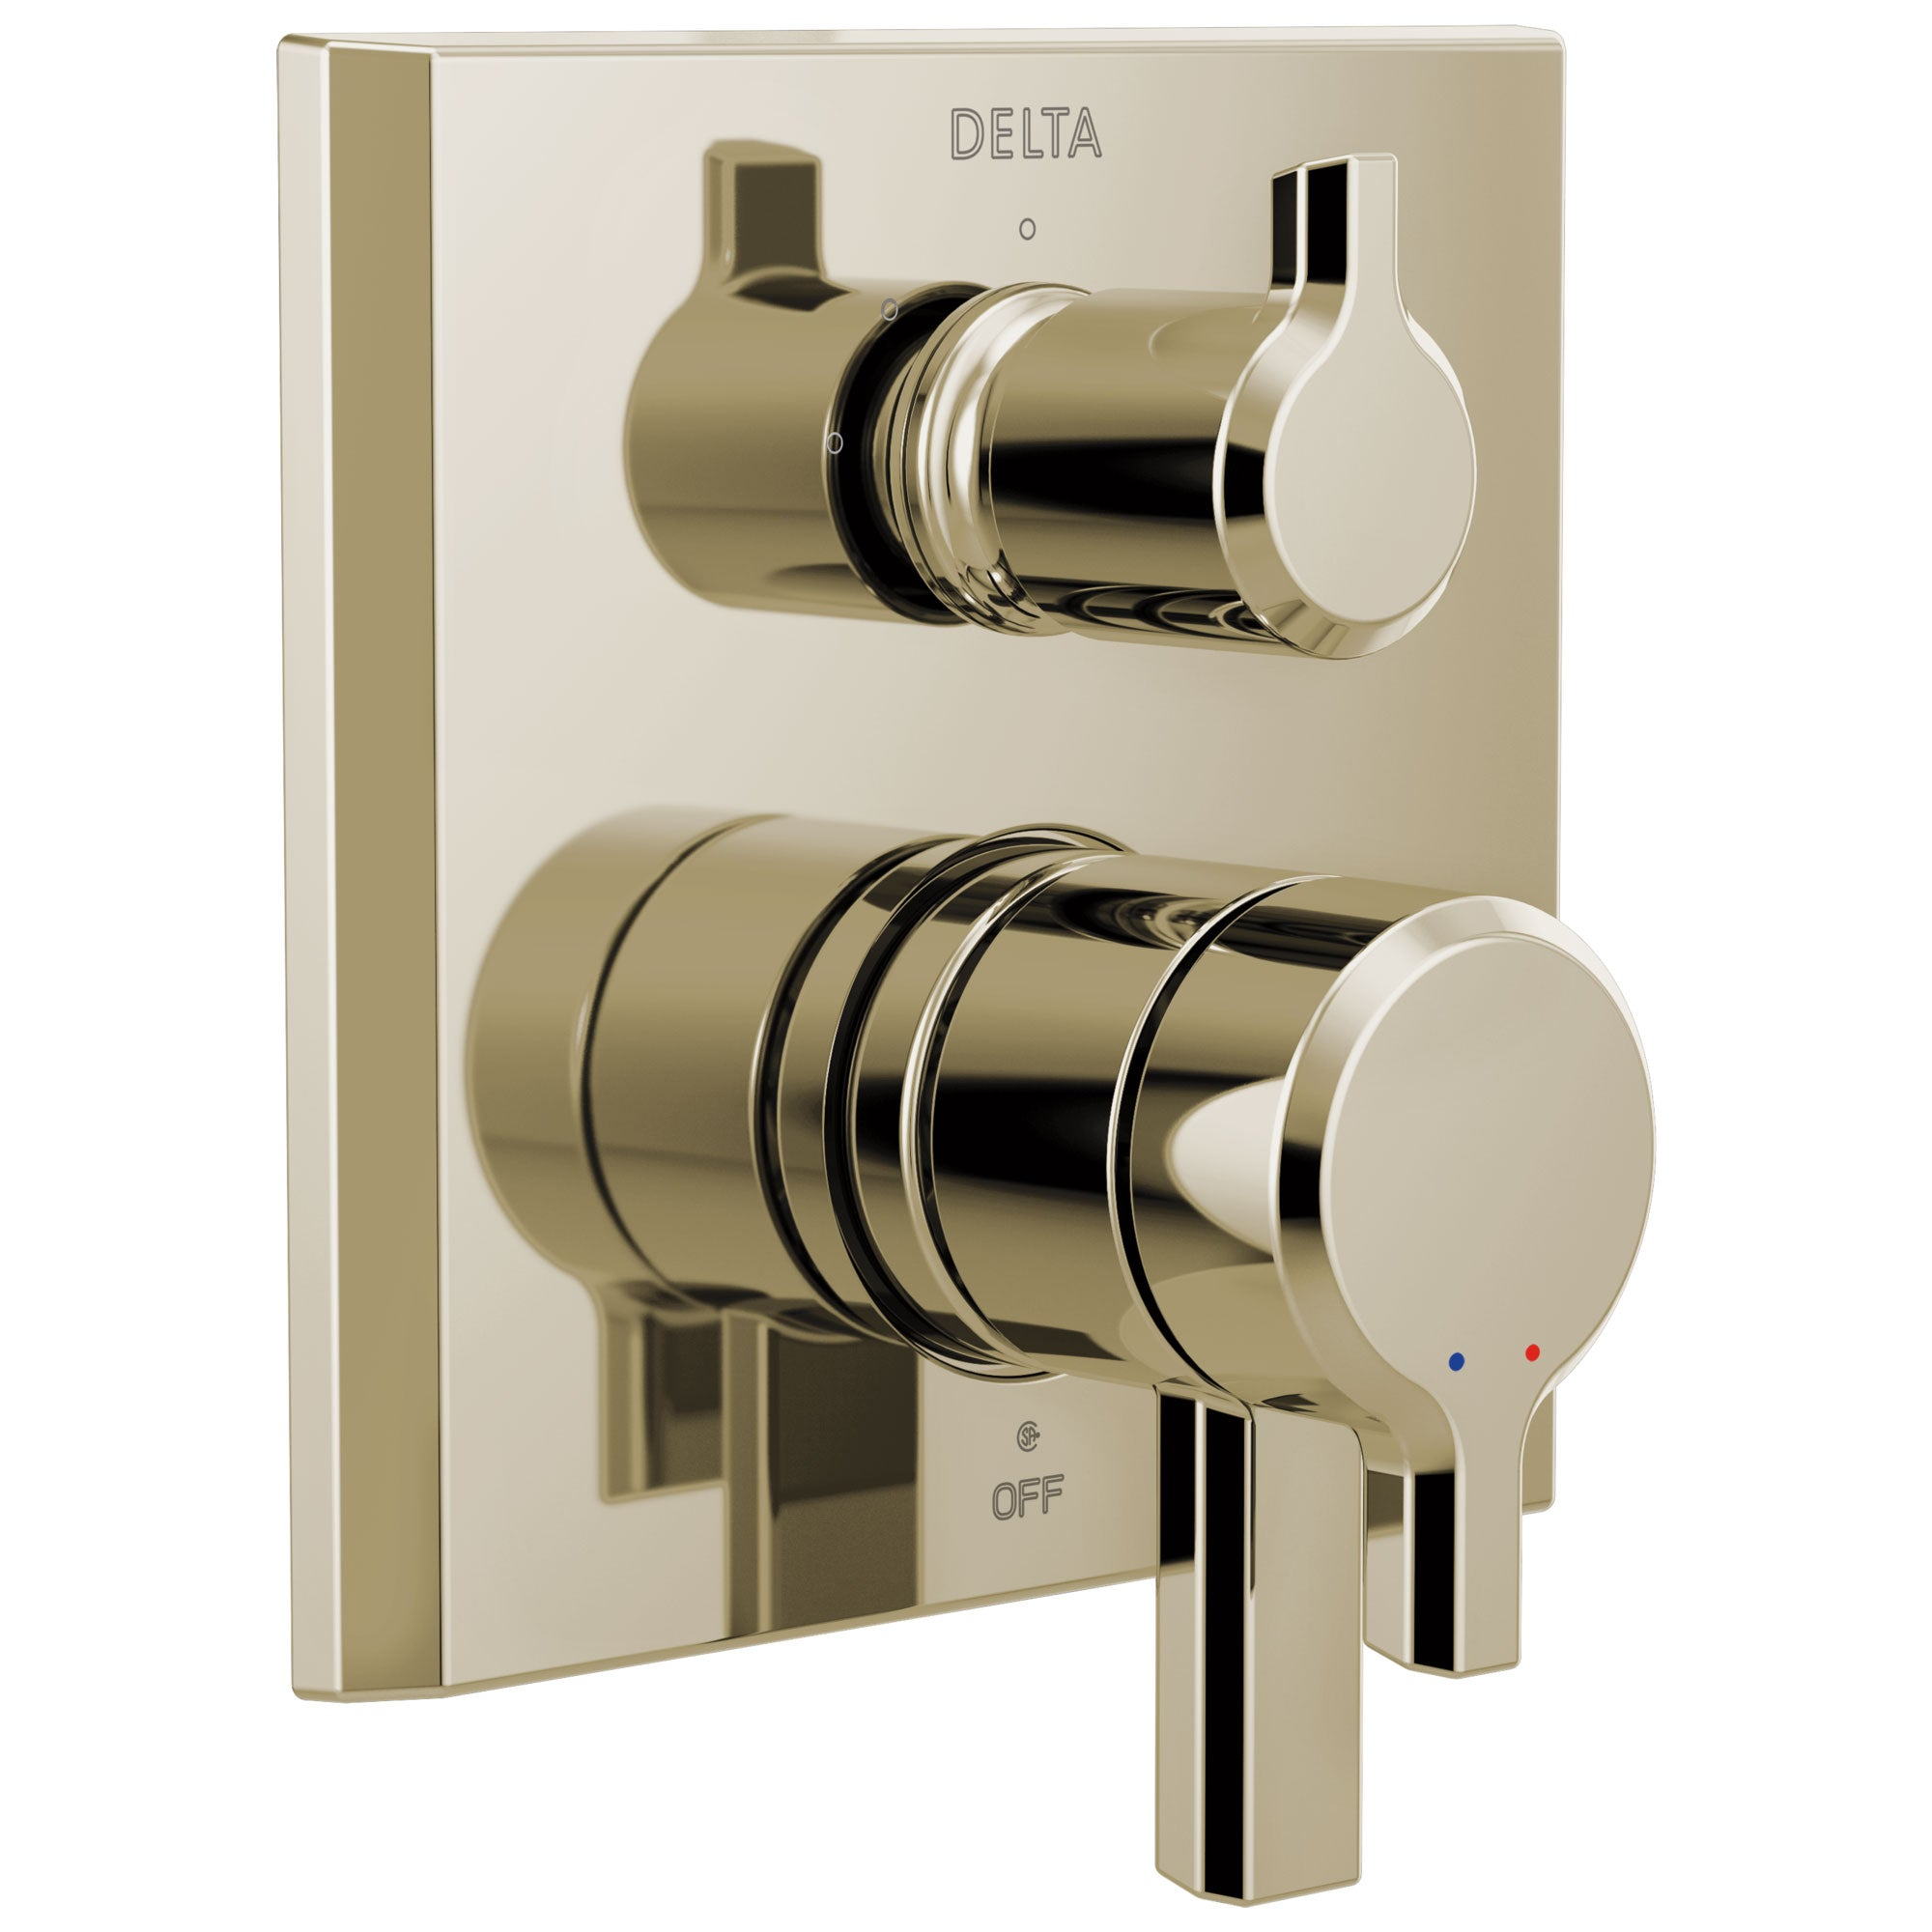 Delta Pivotal Polished Nickel Finish Monitor 17 Series Shower System Control with 3-Setting Diverter Includes Rough-in Valve and Handles D3135V